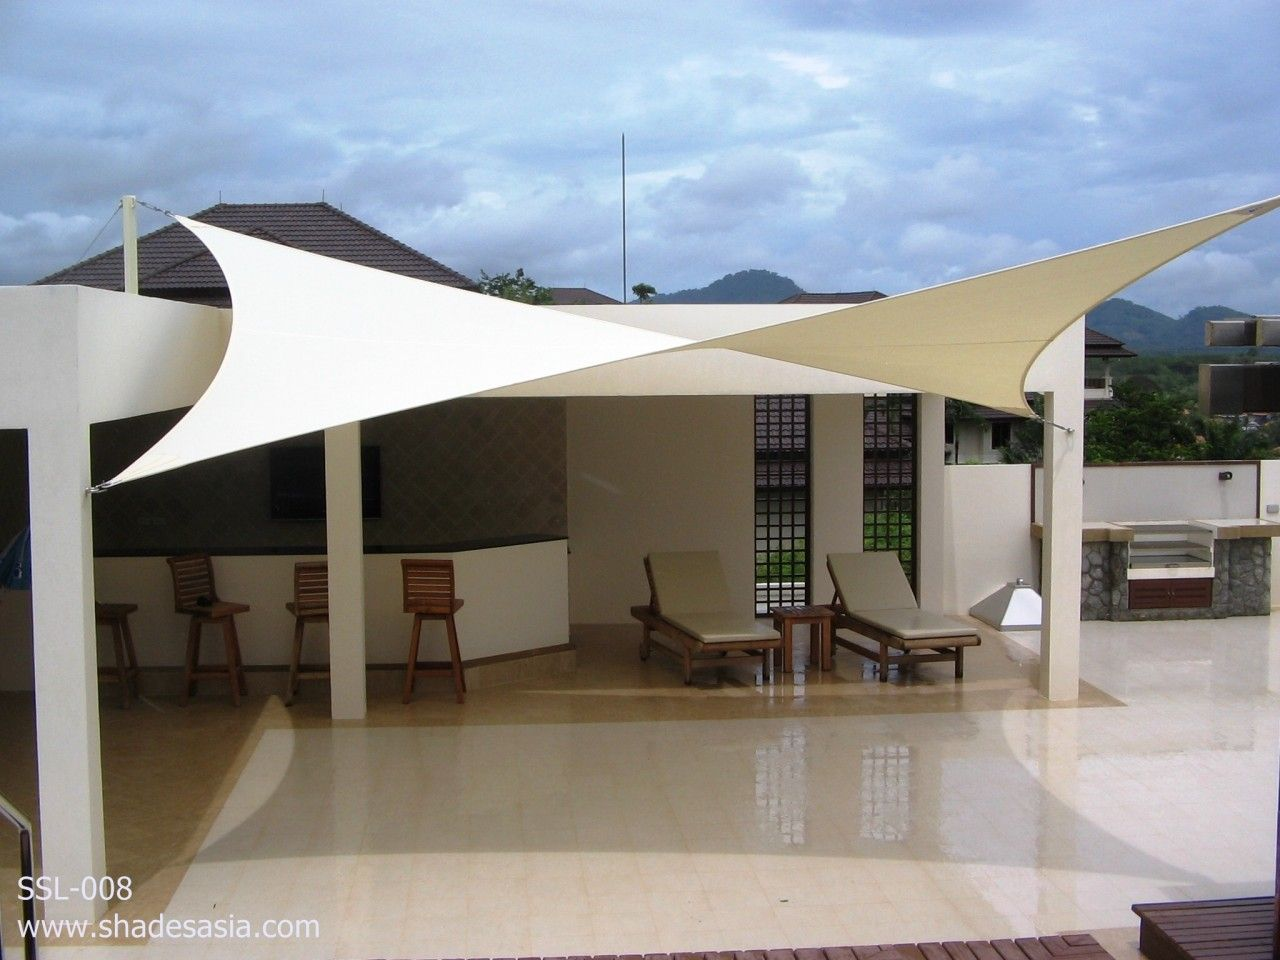 Outdoor Sail Shade Shade For Deck Canopy Outdoor Backyard Canopy Garden Canopy : canopy shade sail - afamca.org